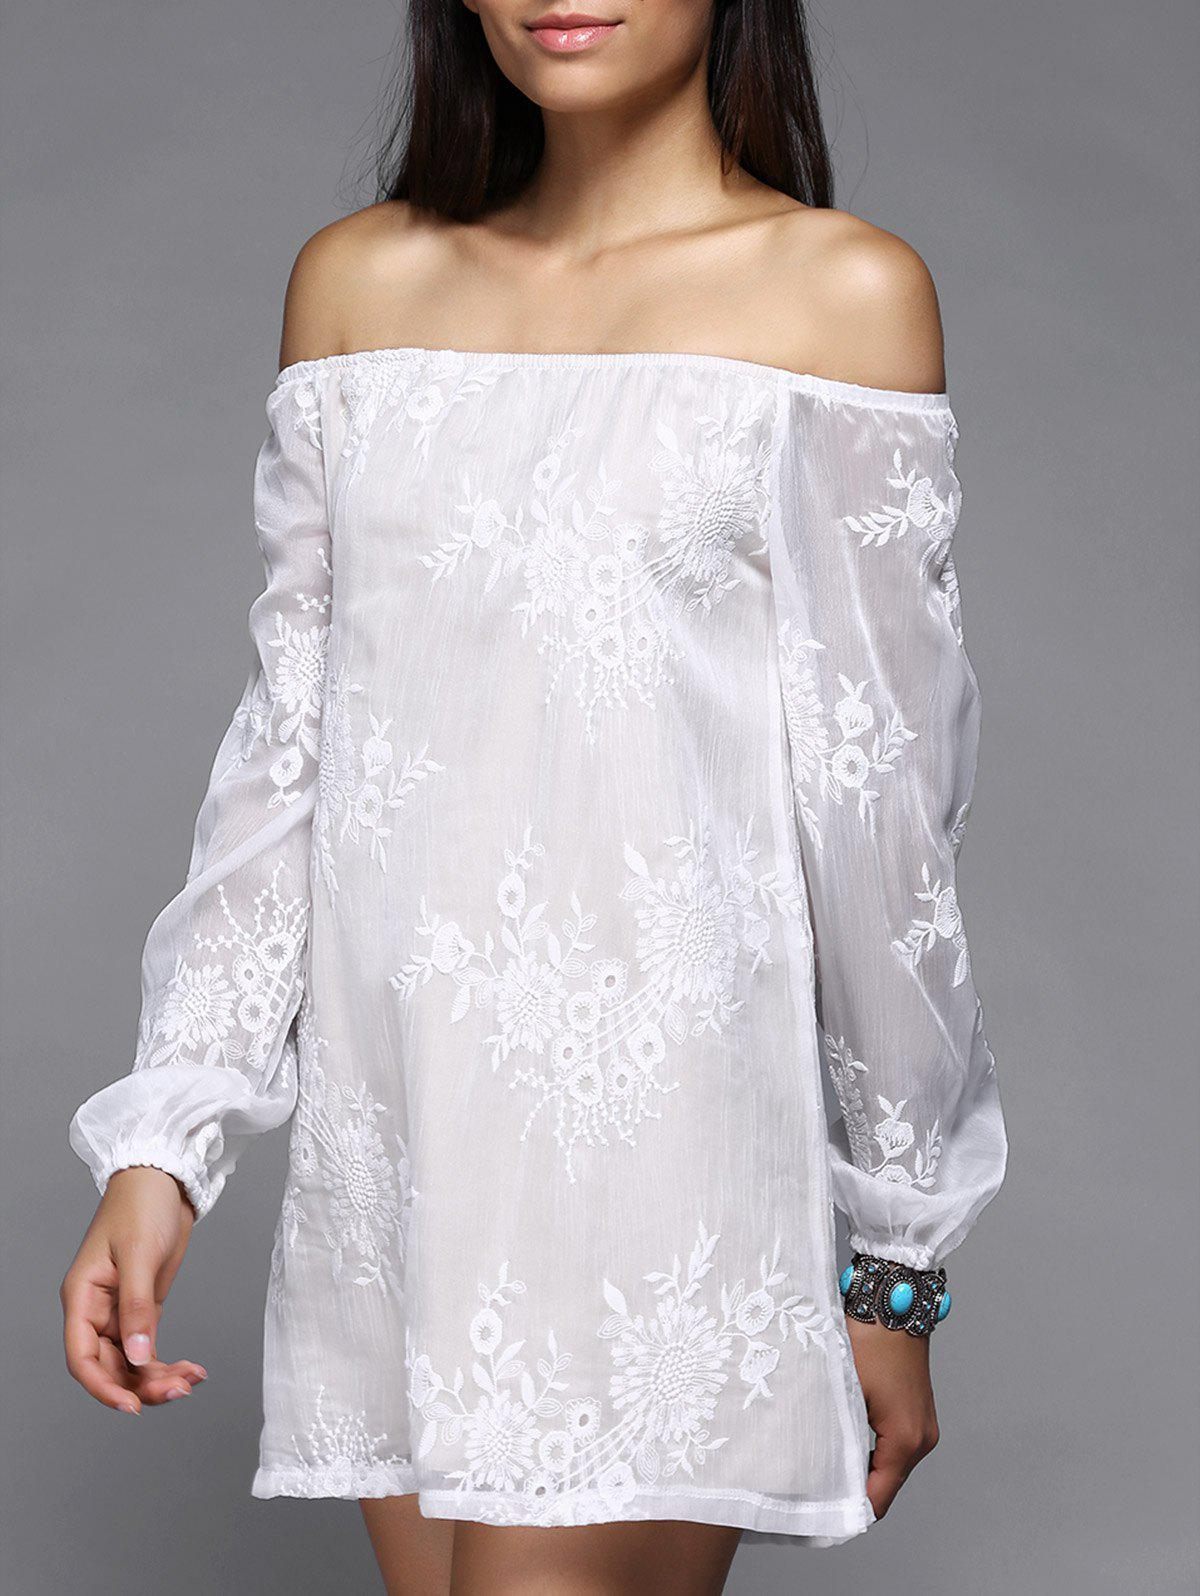 Off The Shoulder Puff Sleeve Embroidered Dress - WHITE M